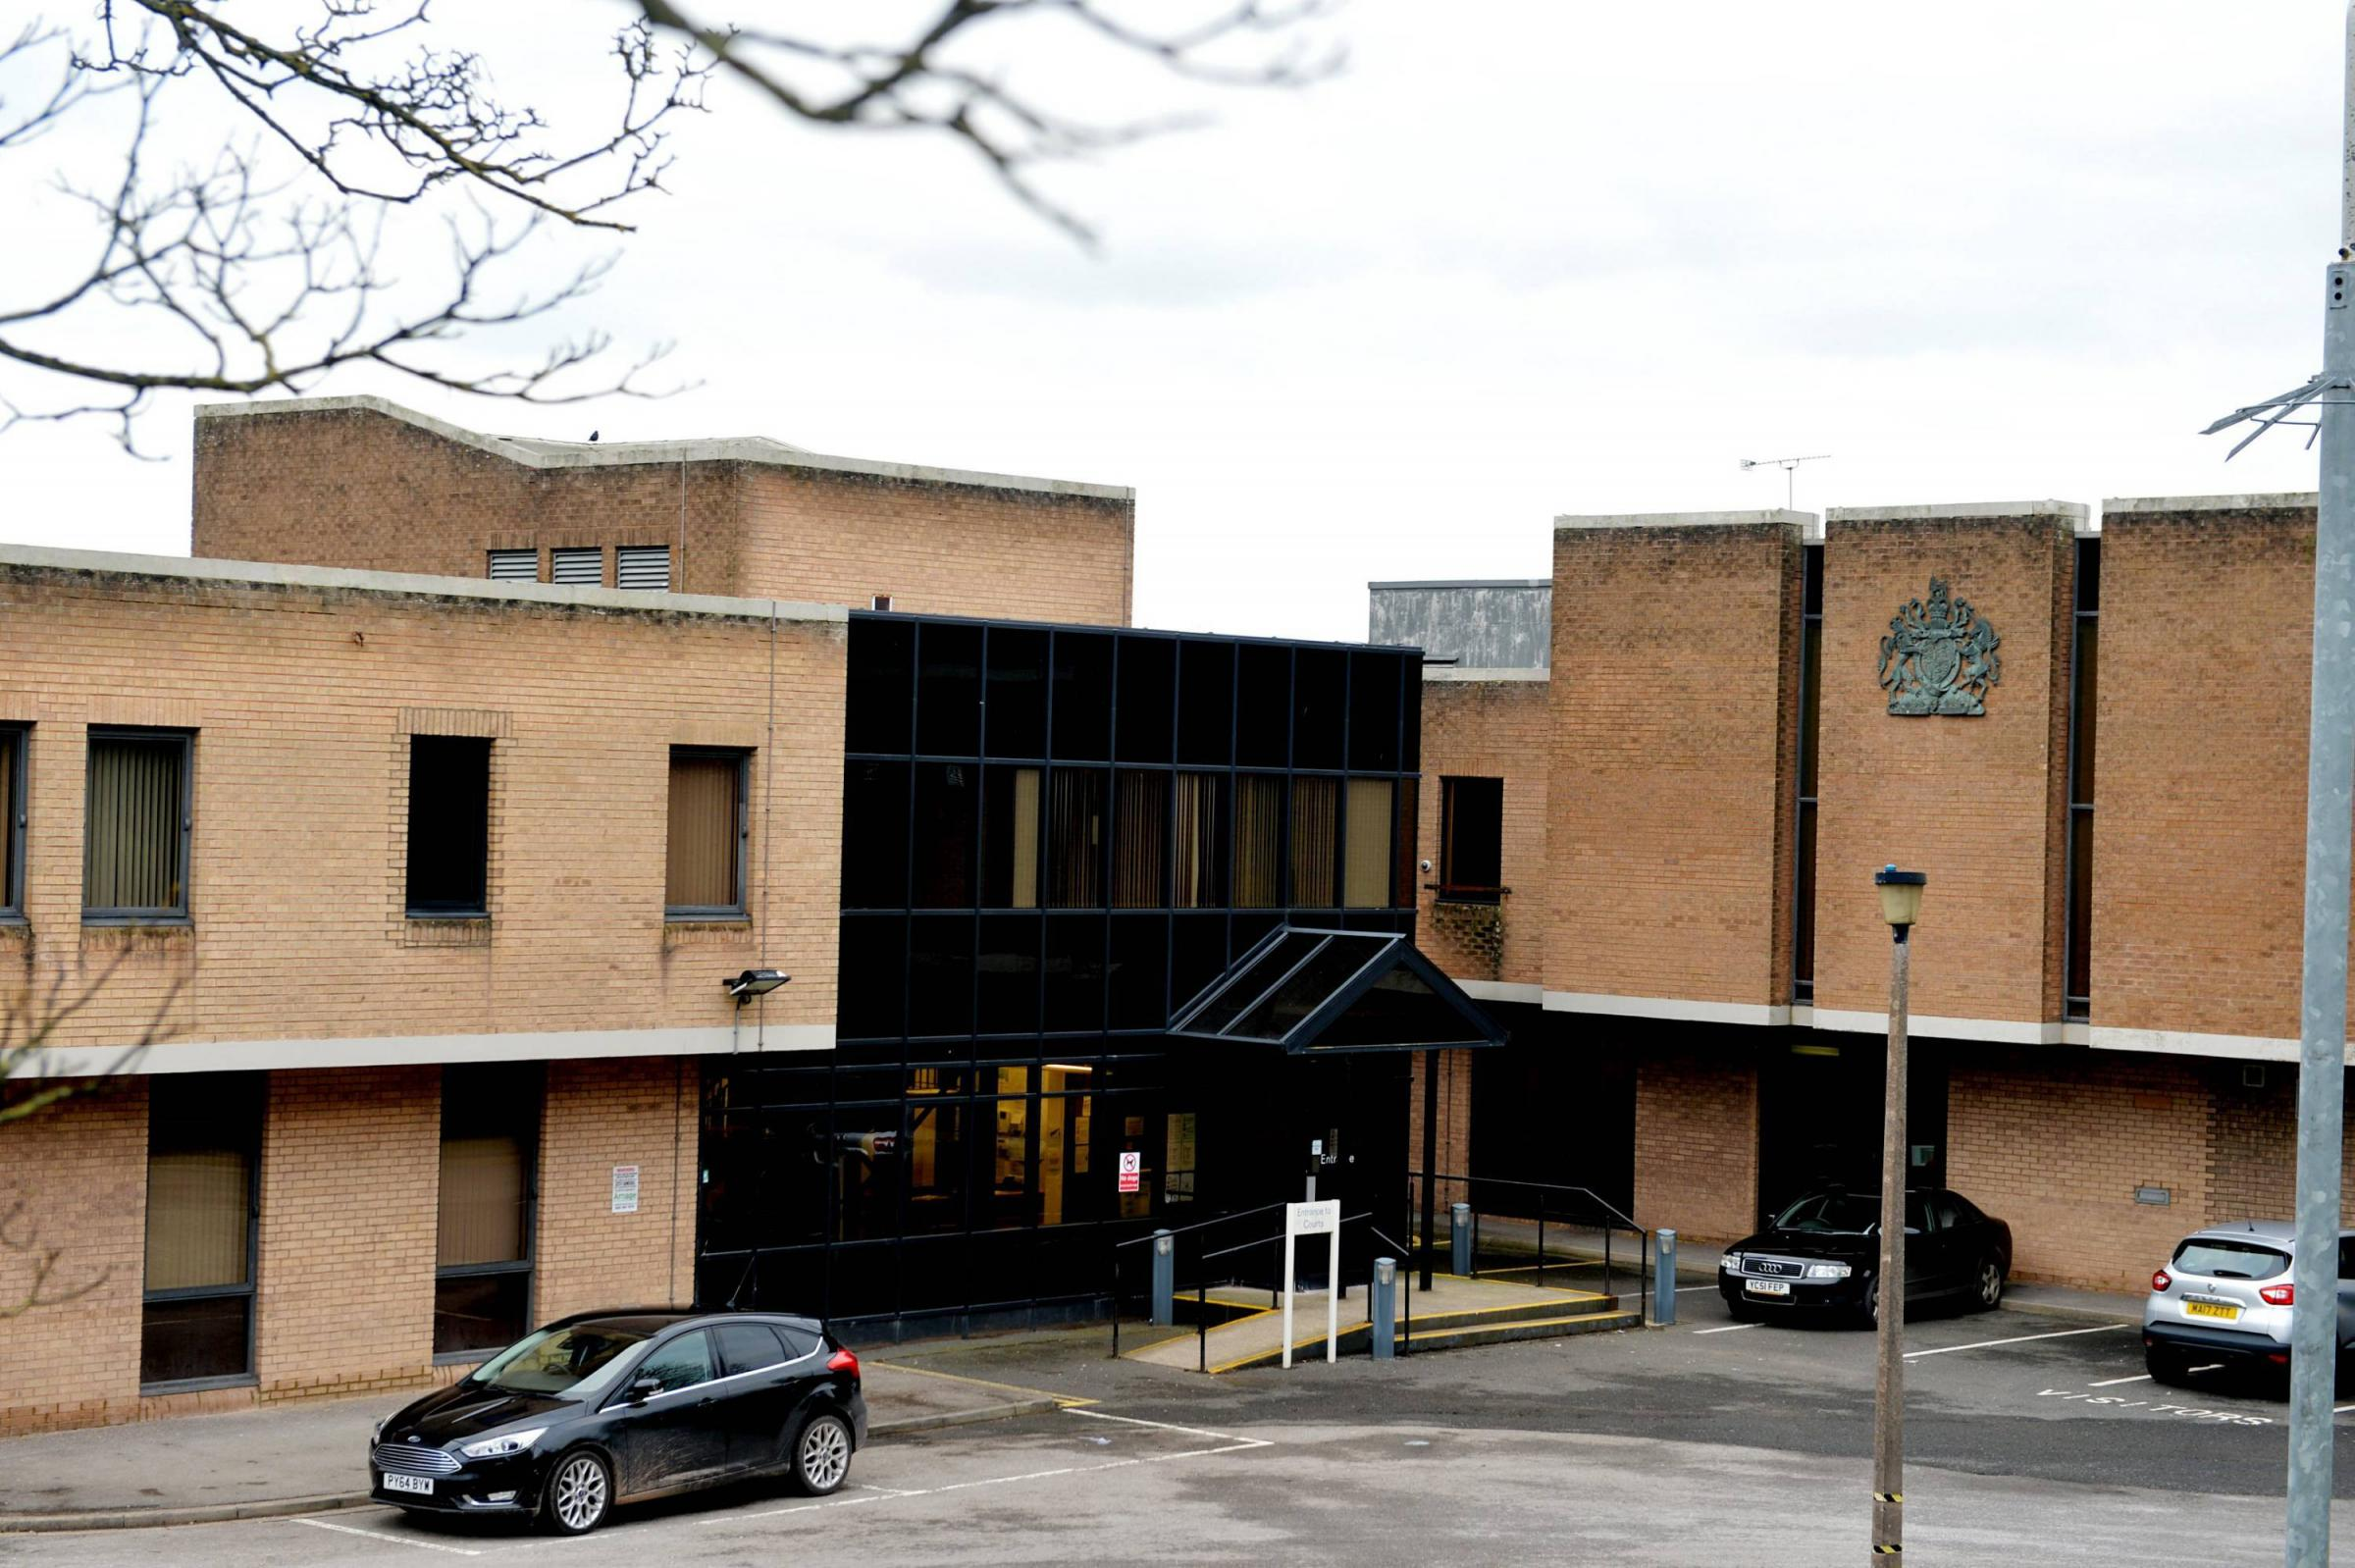 Workington Magistrates Court West Cumbria..Pic Tom Kay      Monday 5th February 2018 50089830T011.JPG.